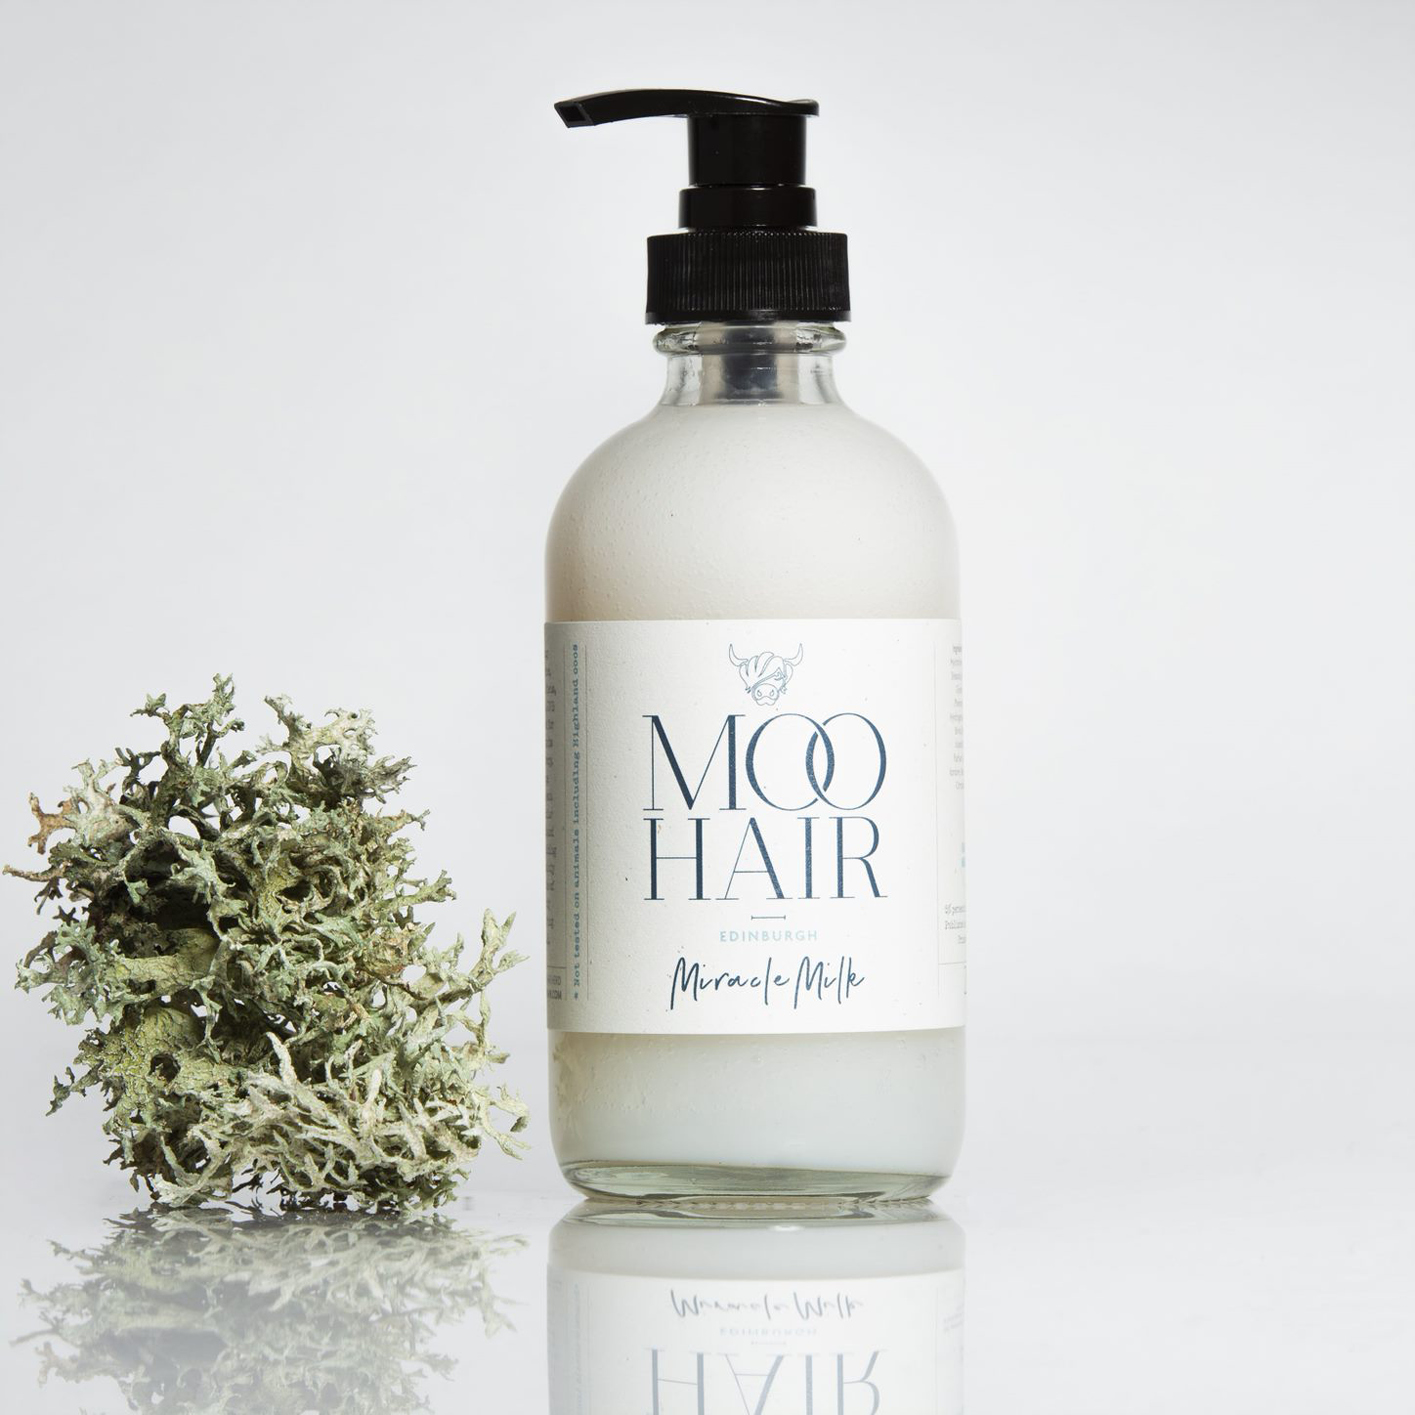 Moo Hair is one of the plastic-free brands Beth Noy recommends